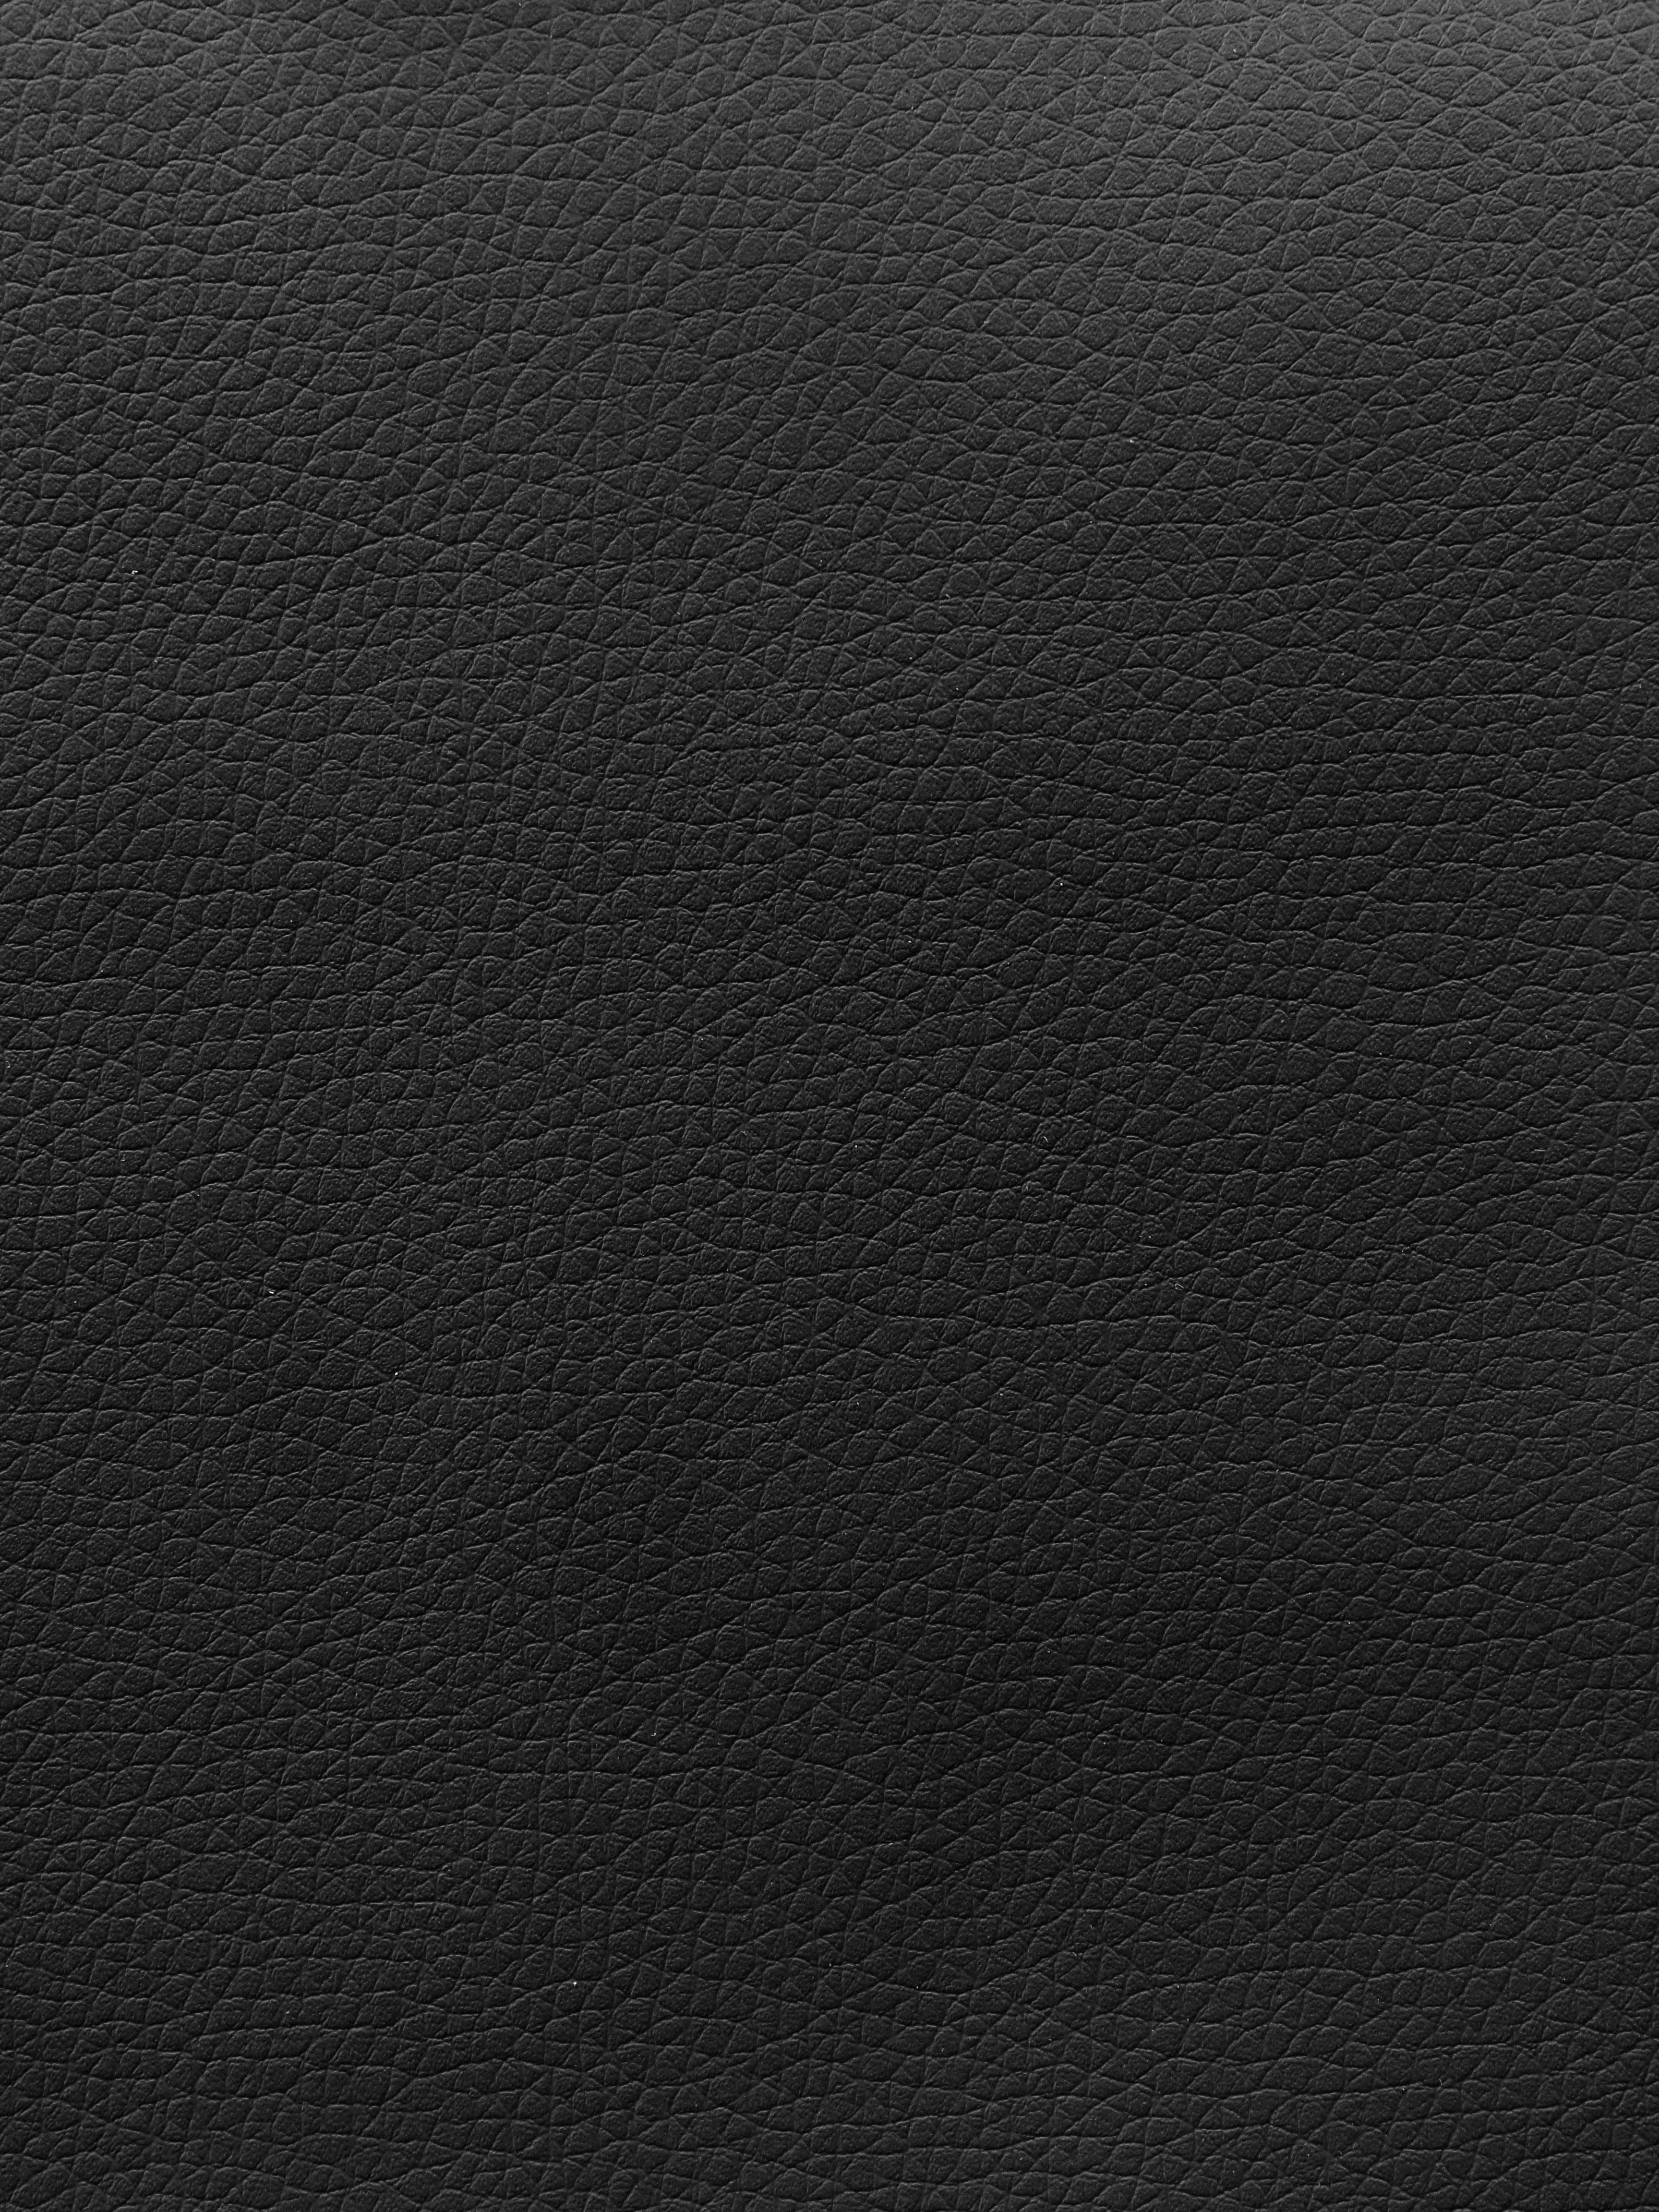 Black Leather Texture Background High Resolution Paper Backgrounds 3456x4608